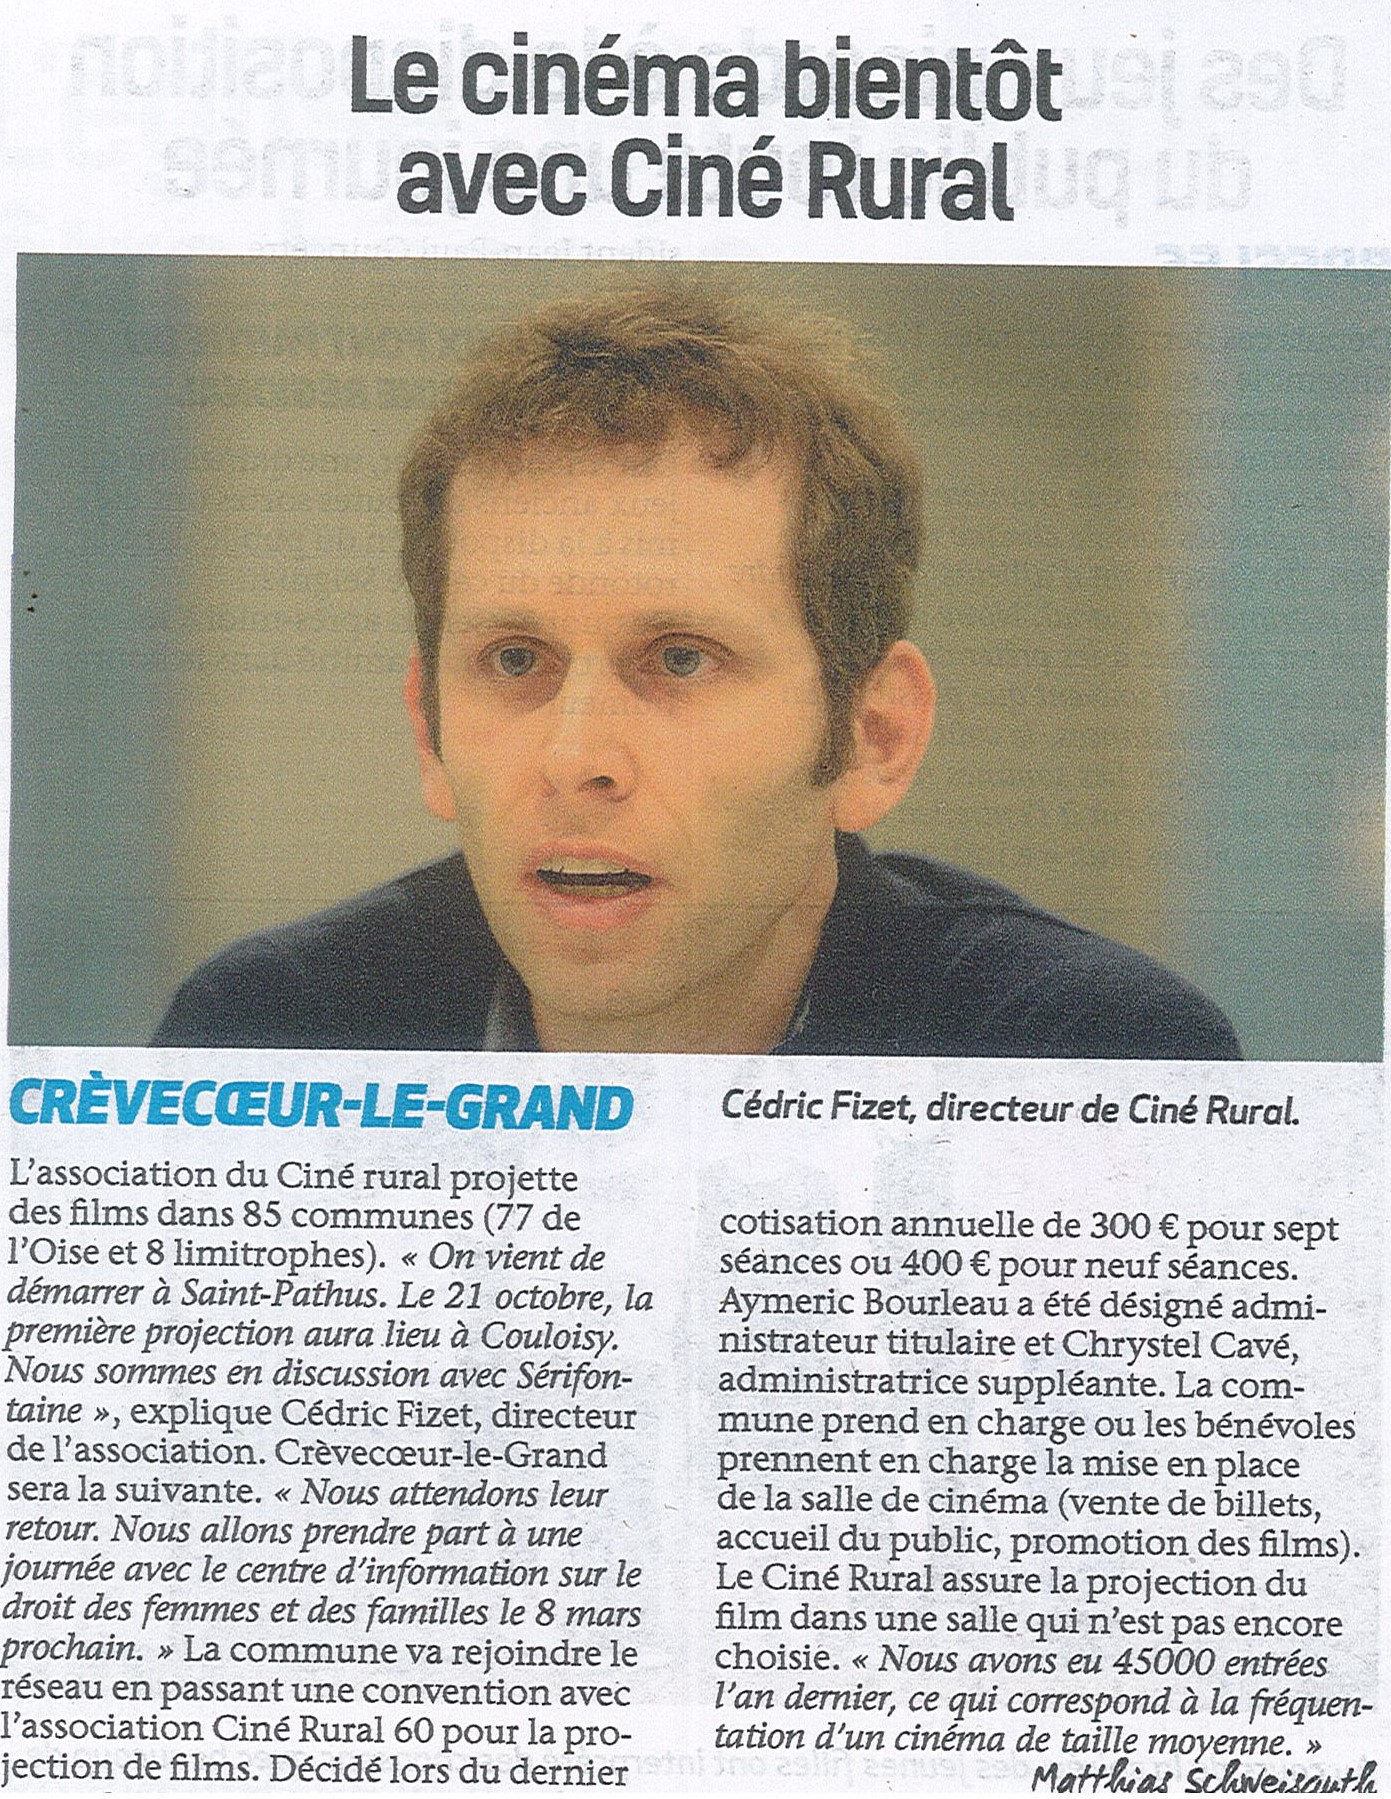 Le Bonhomme Picard - 10 octobre - Article.pdf